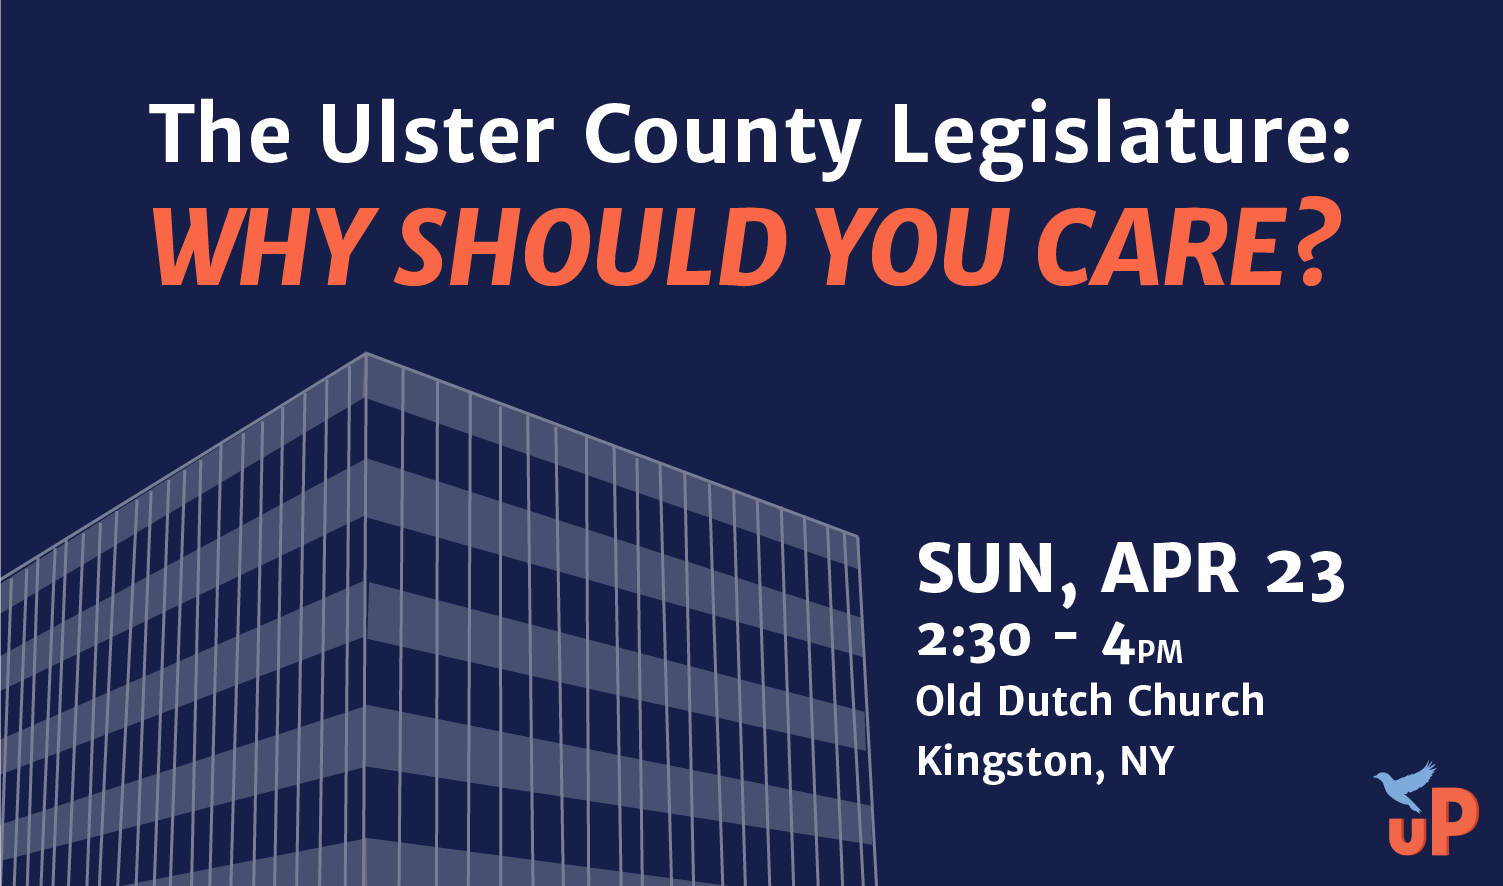 The Ulster County Legislature: Why Should You Care?